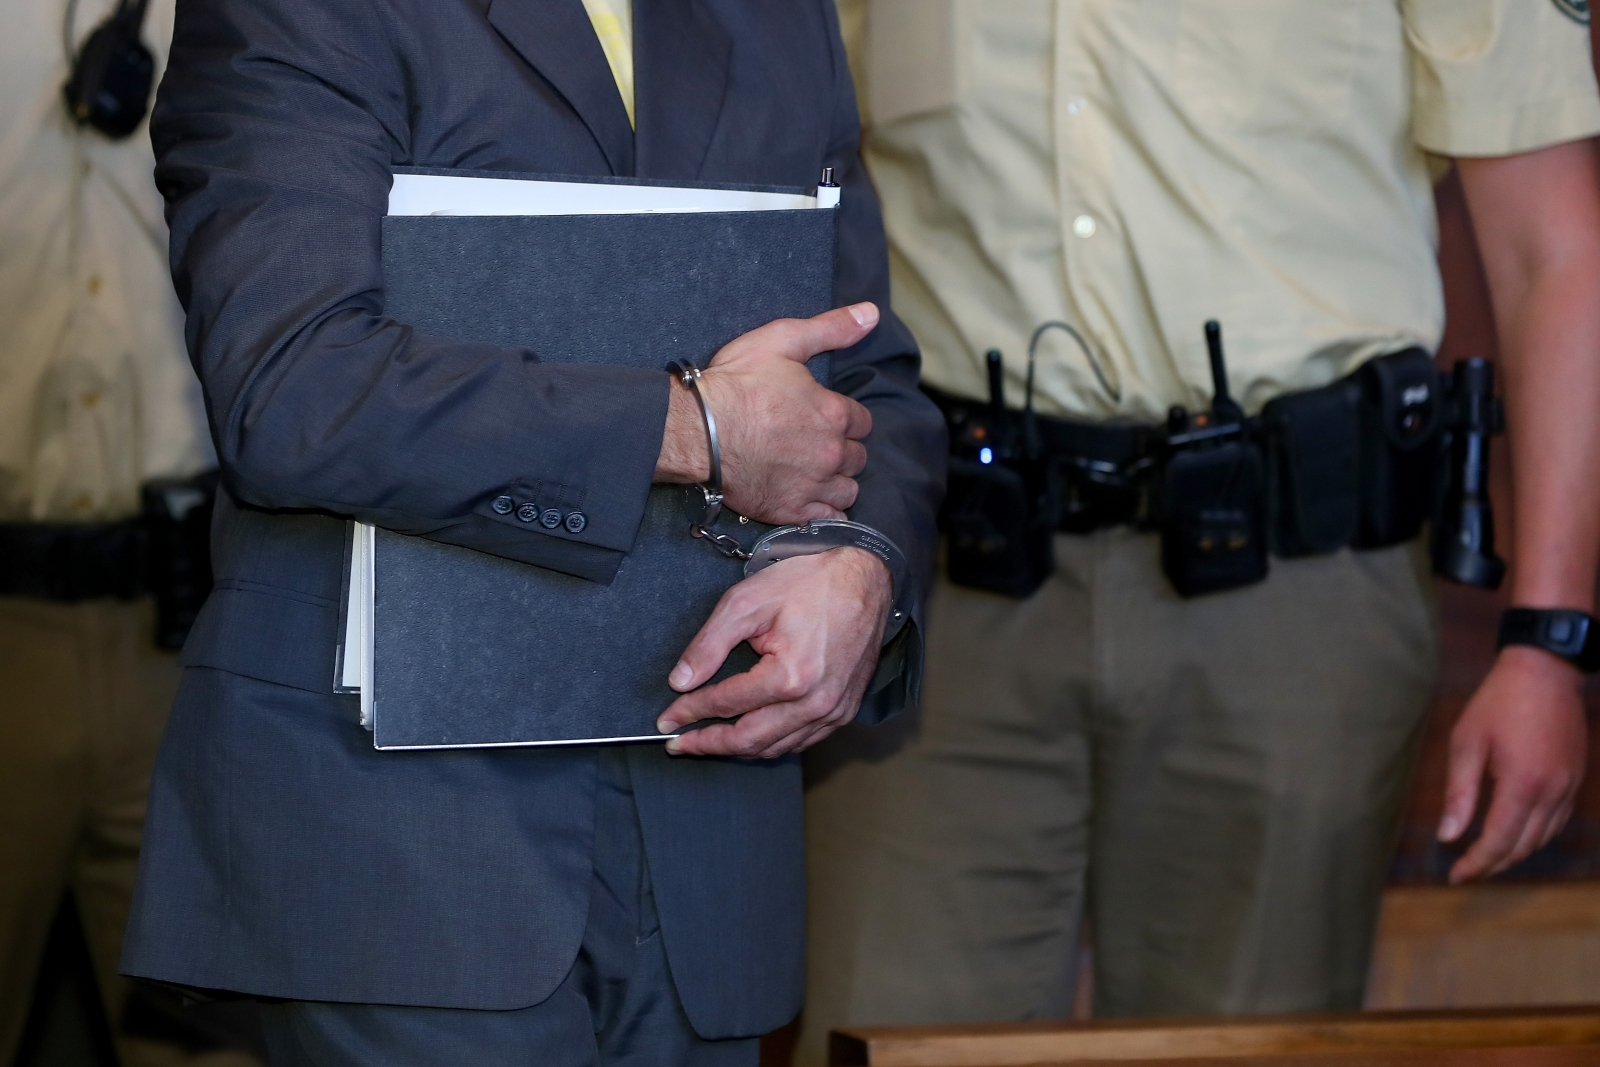 Wolfgang P., charged with the murder of a police officer, in state court in Nuremberg